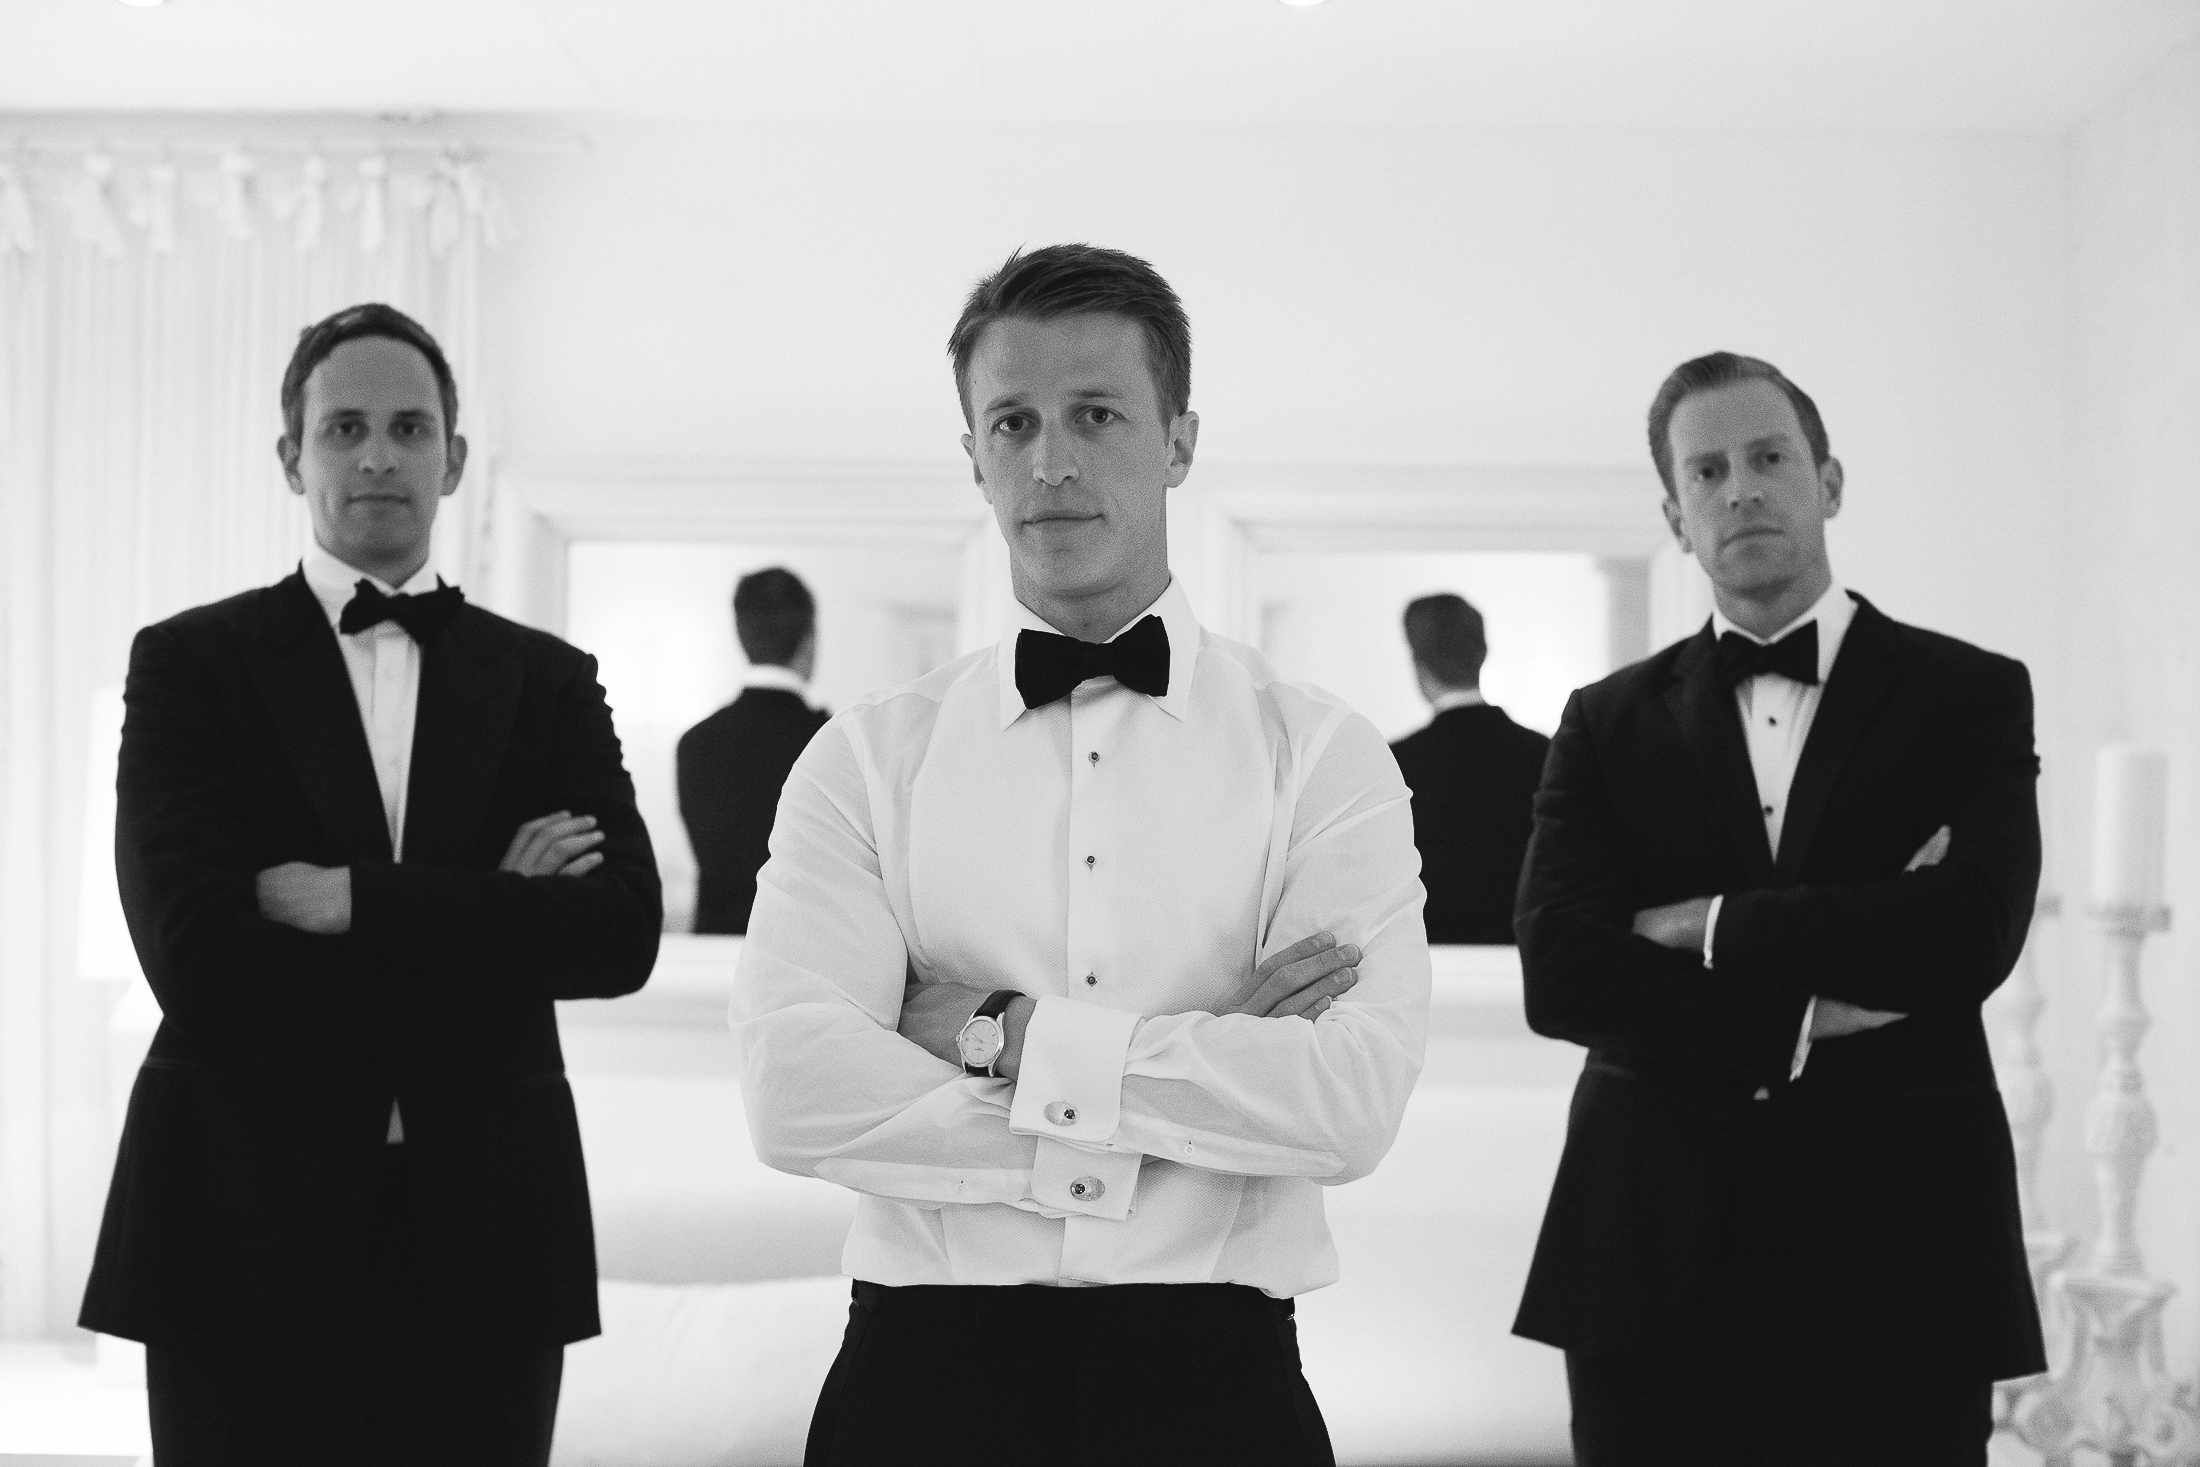 pasquale andreotti black and white groom's portrait with his best men